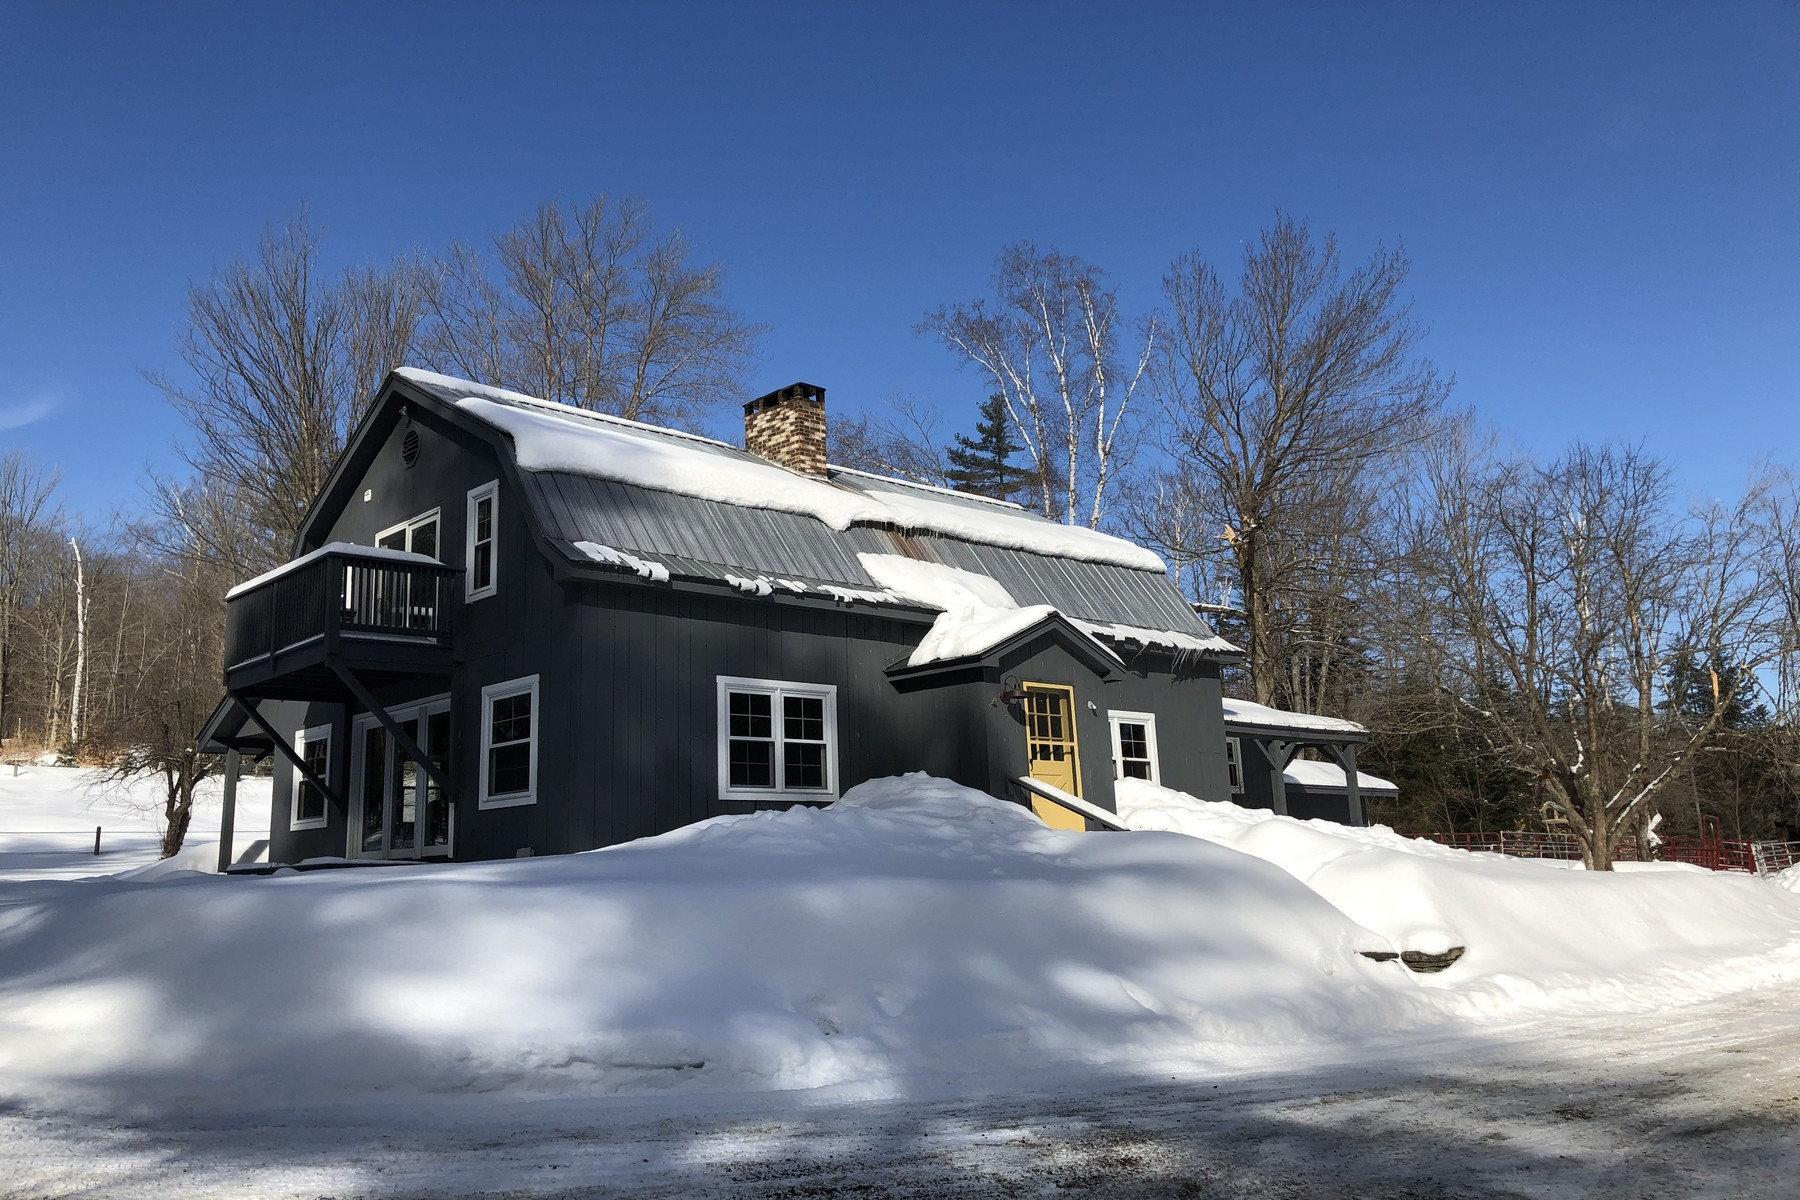 Single Family Home for Sale at Lovely Gambrel - Very Private 2402 Simonsville Rd Andover, Vermont 05143 United States